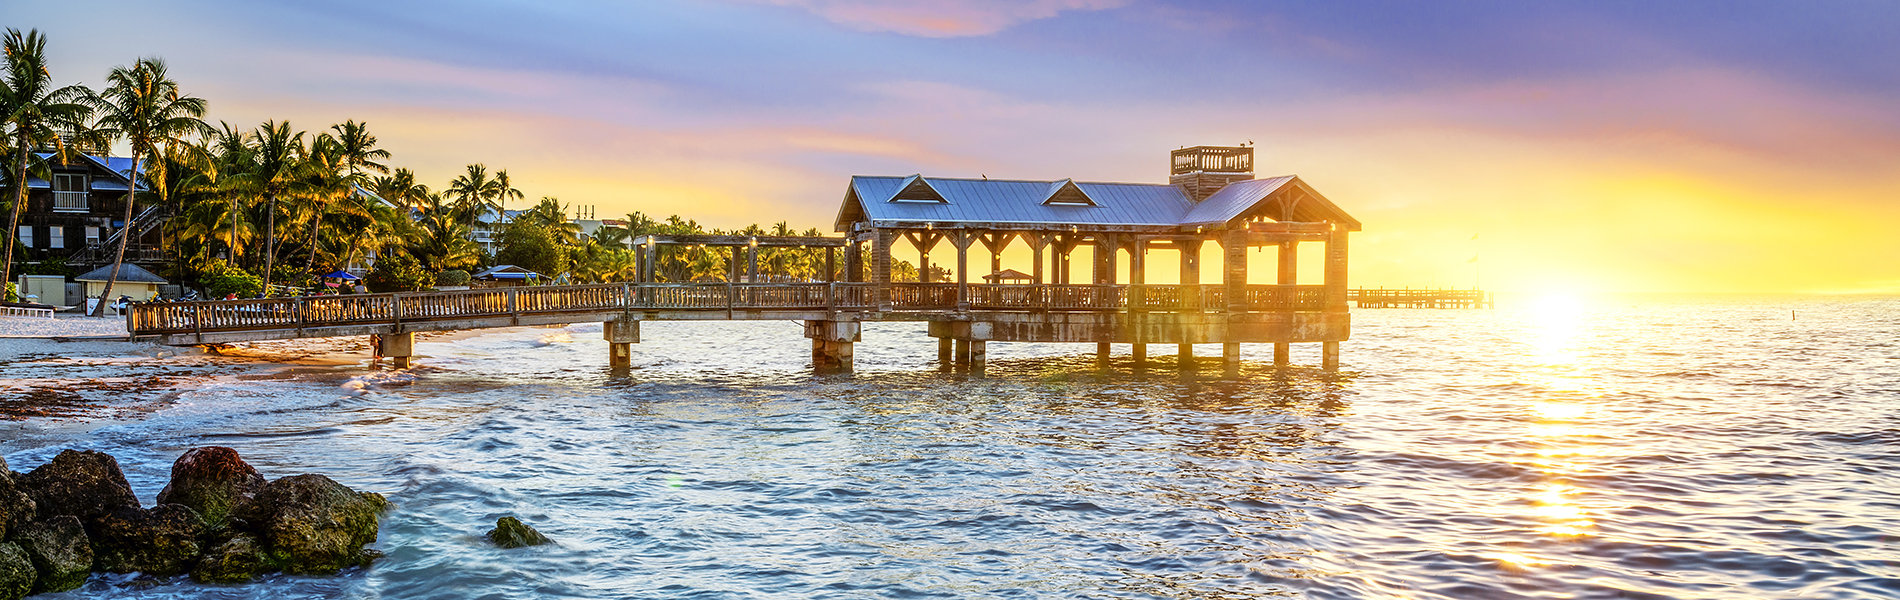 10 Best Places To Go In Florida Smartertravel